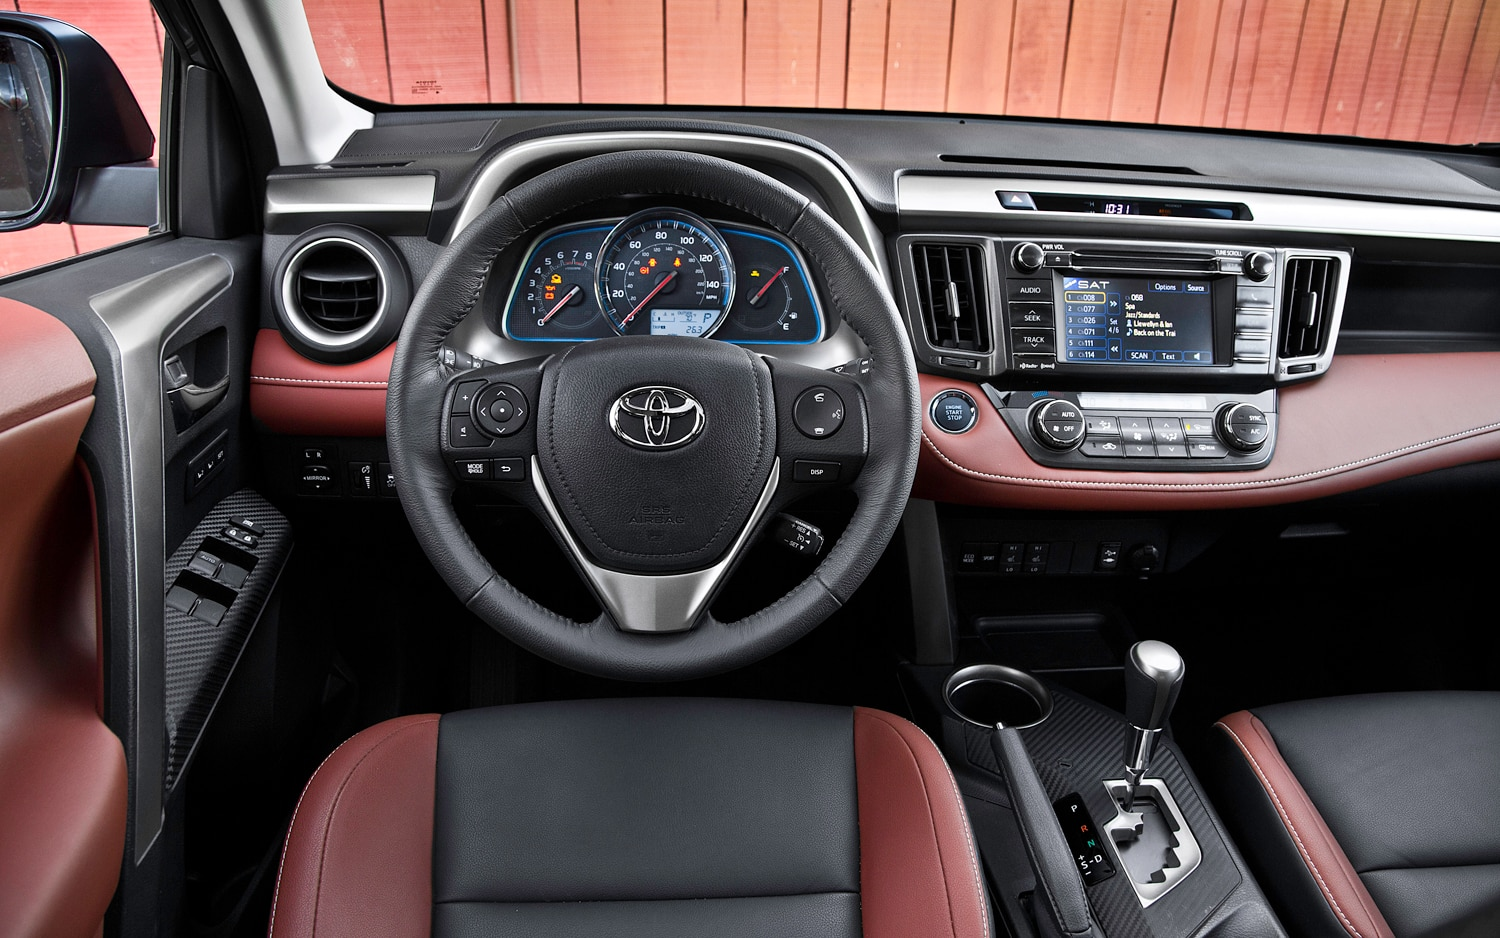 Toyota toyota rav 2013 : Priced: 2013 Toyota RAV4 Sees Modest Price Bump to $24,145